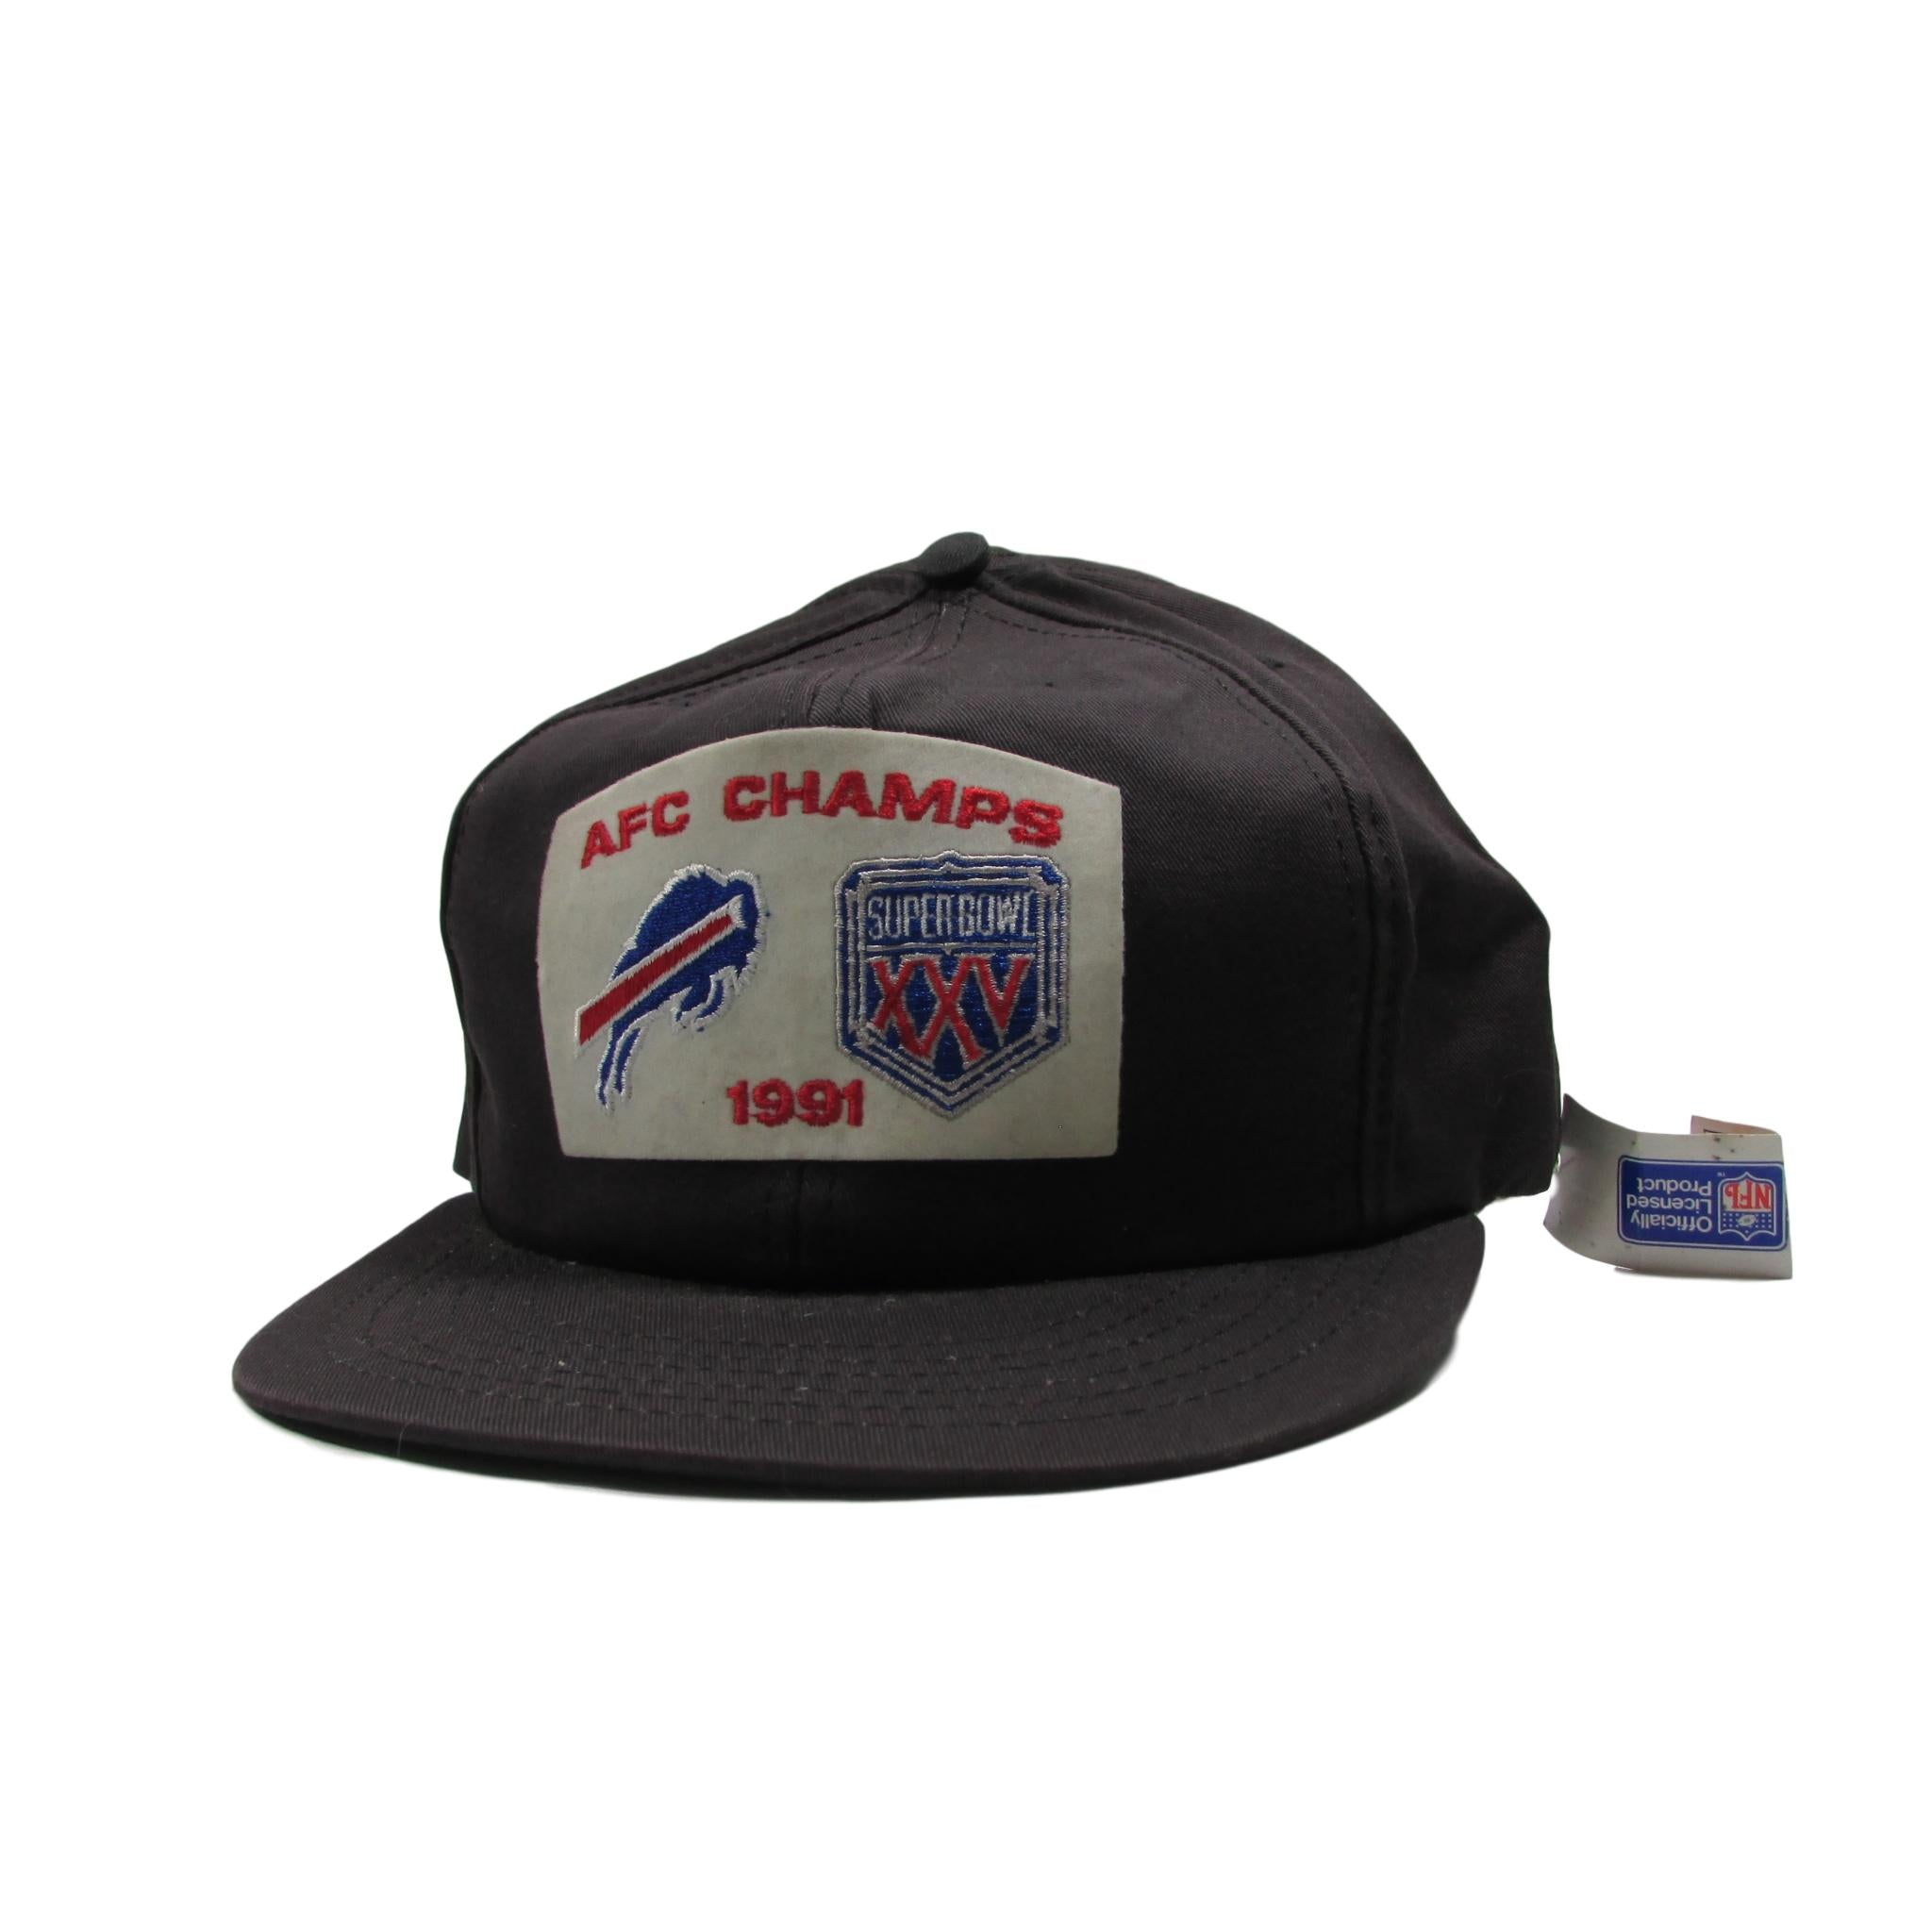 Buffalo Bills 1991 AFC Champions Superbowl XXV Deadstock Snapback Hat American Needle